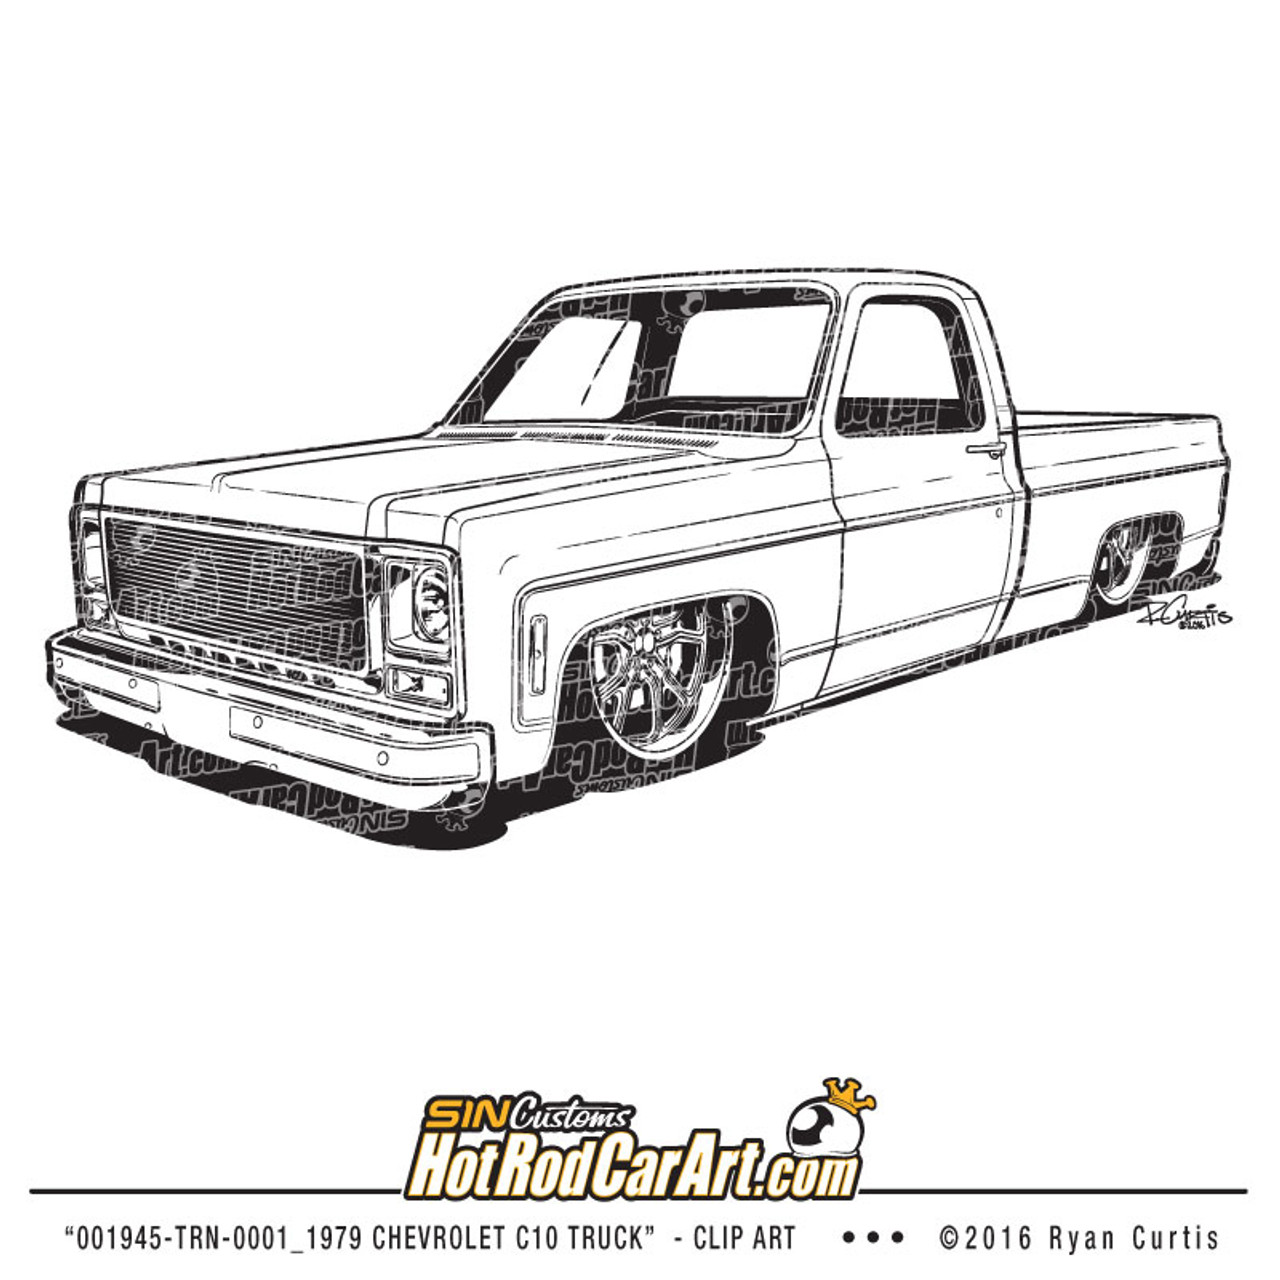 hight resolution of 1979 chevrolet c10 pickup clip art illustration